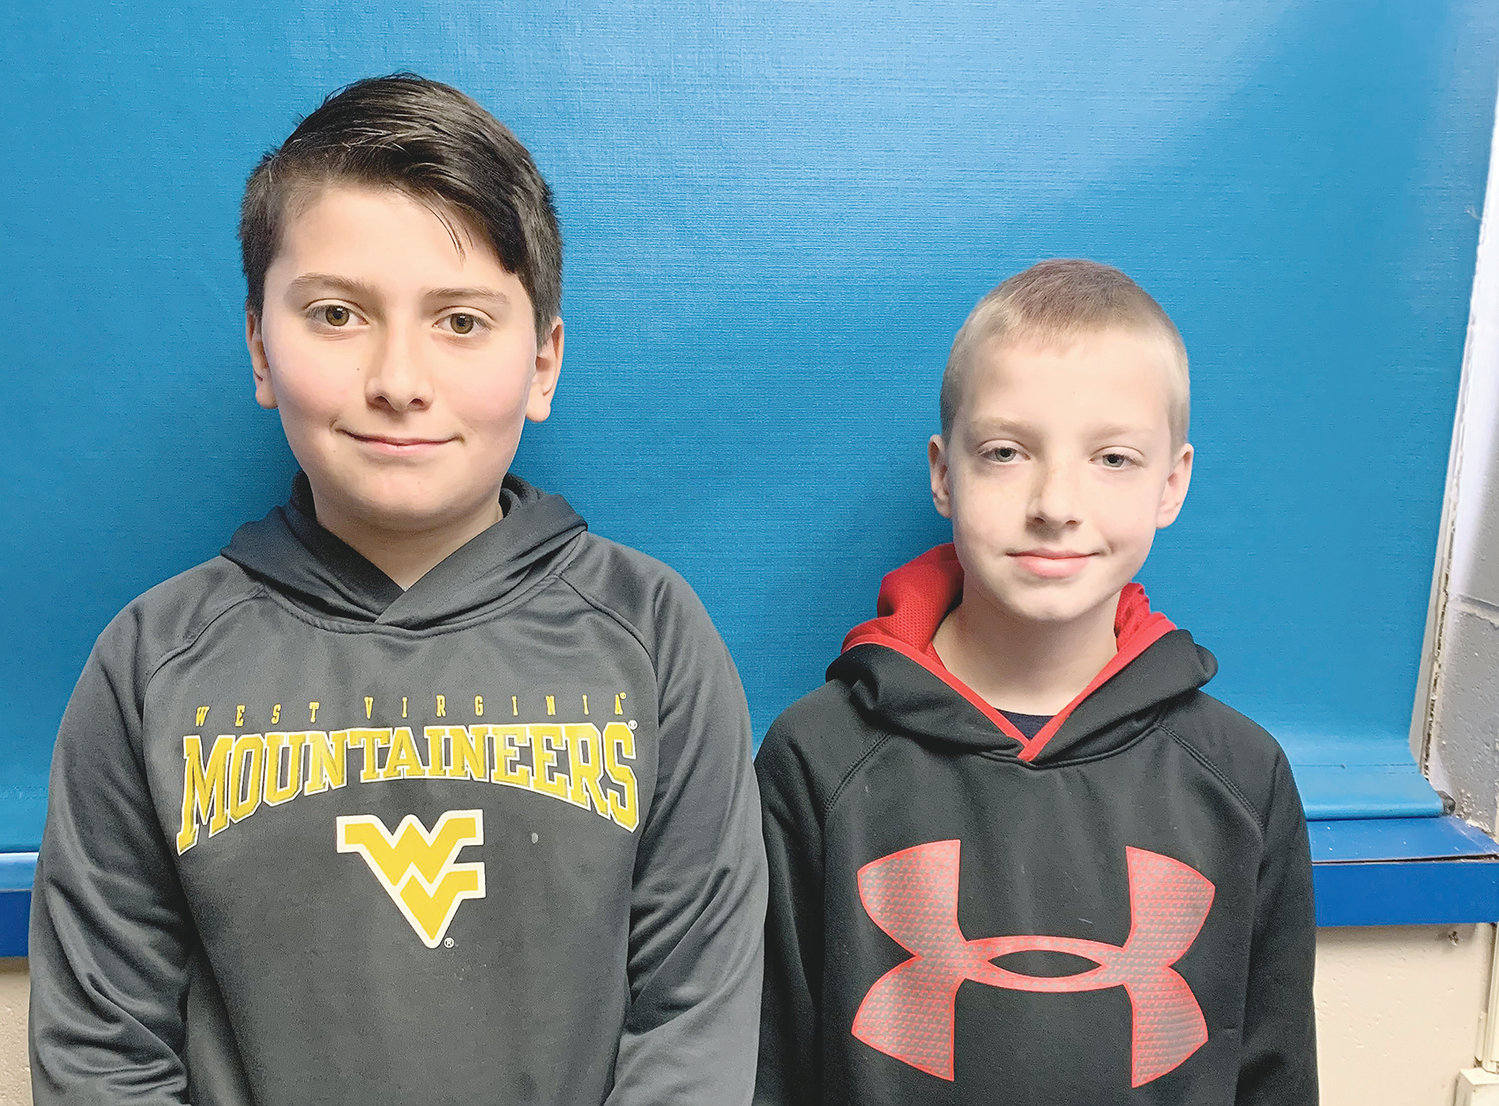 Bankhead Middle School students Devan Johnson and Austin Nunnely were recognized at the VEX IQ robotics competition for their robot development strategy.